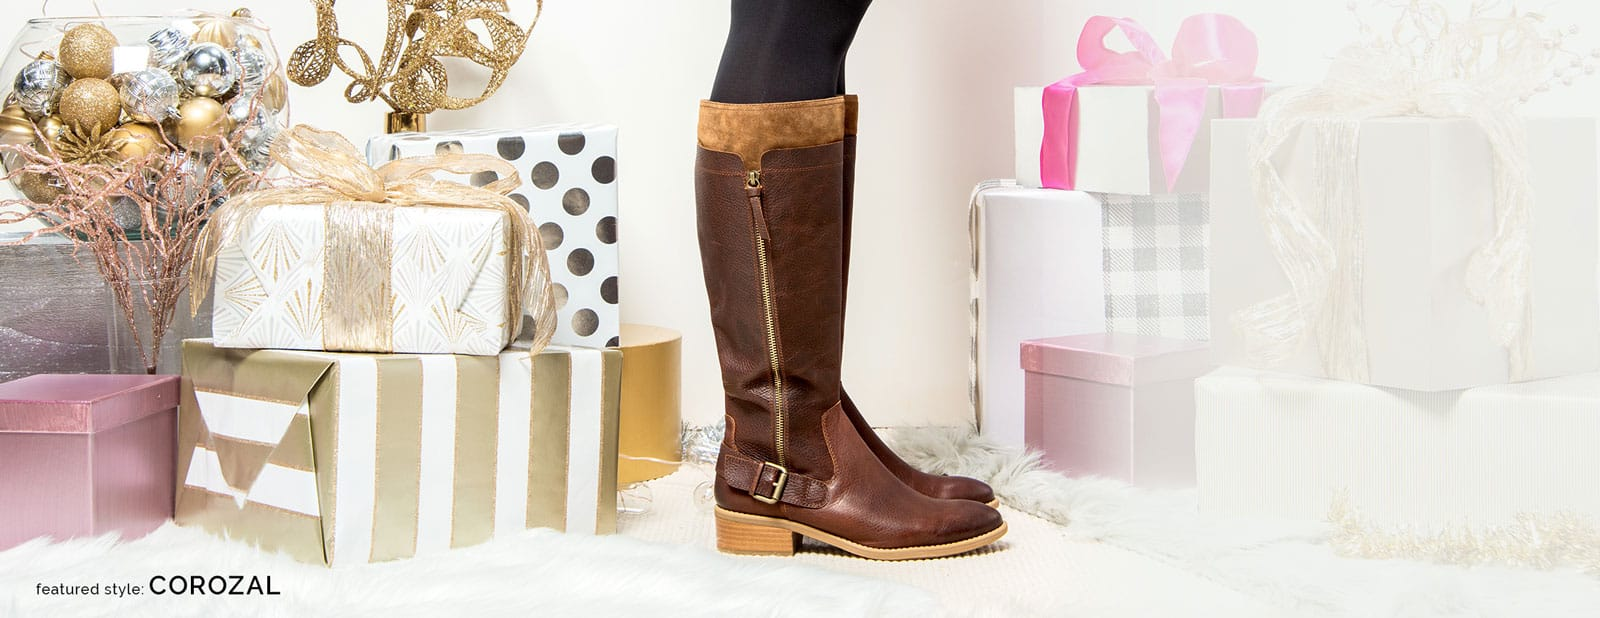 Featured style: Corozal riding boot, shown in brown